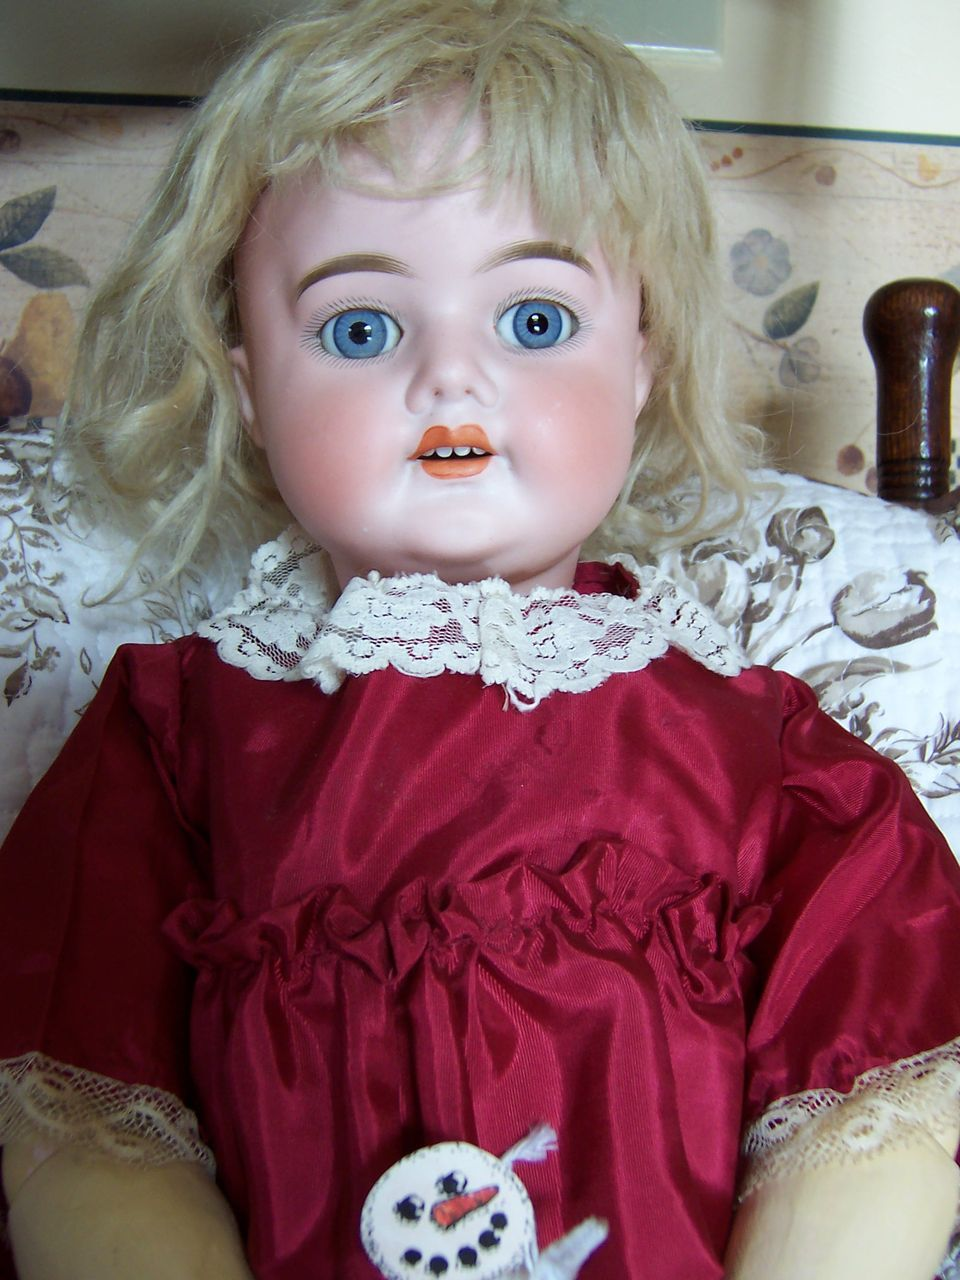 Here is a darling doll for your consideration. This antique Schoenau Hoffmeister Doll is 26 tall. She has her original pate and wig in a honey blonde